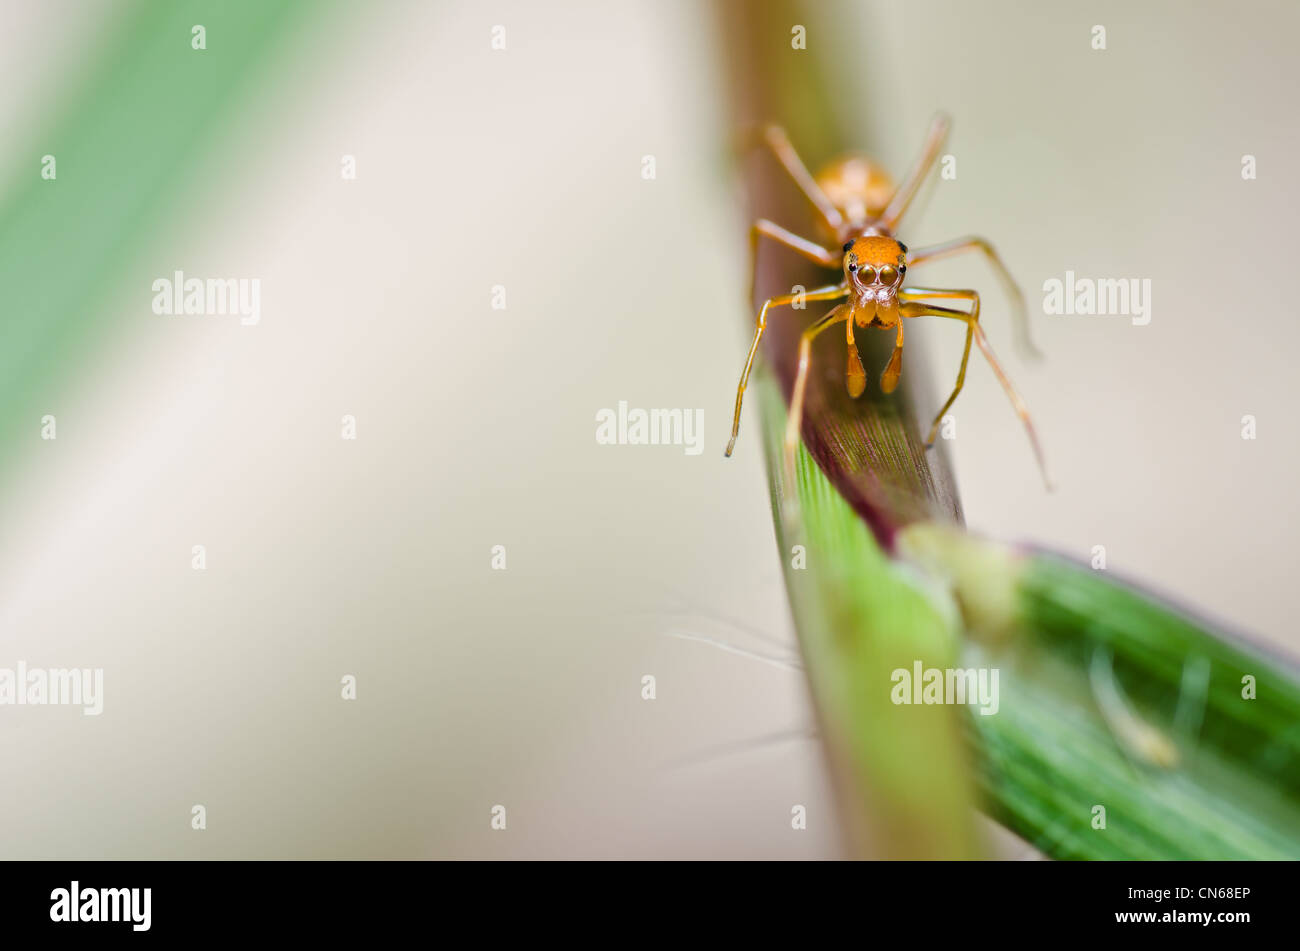 spider in nature or in the garden - Stock Image